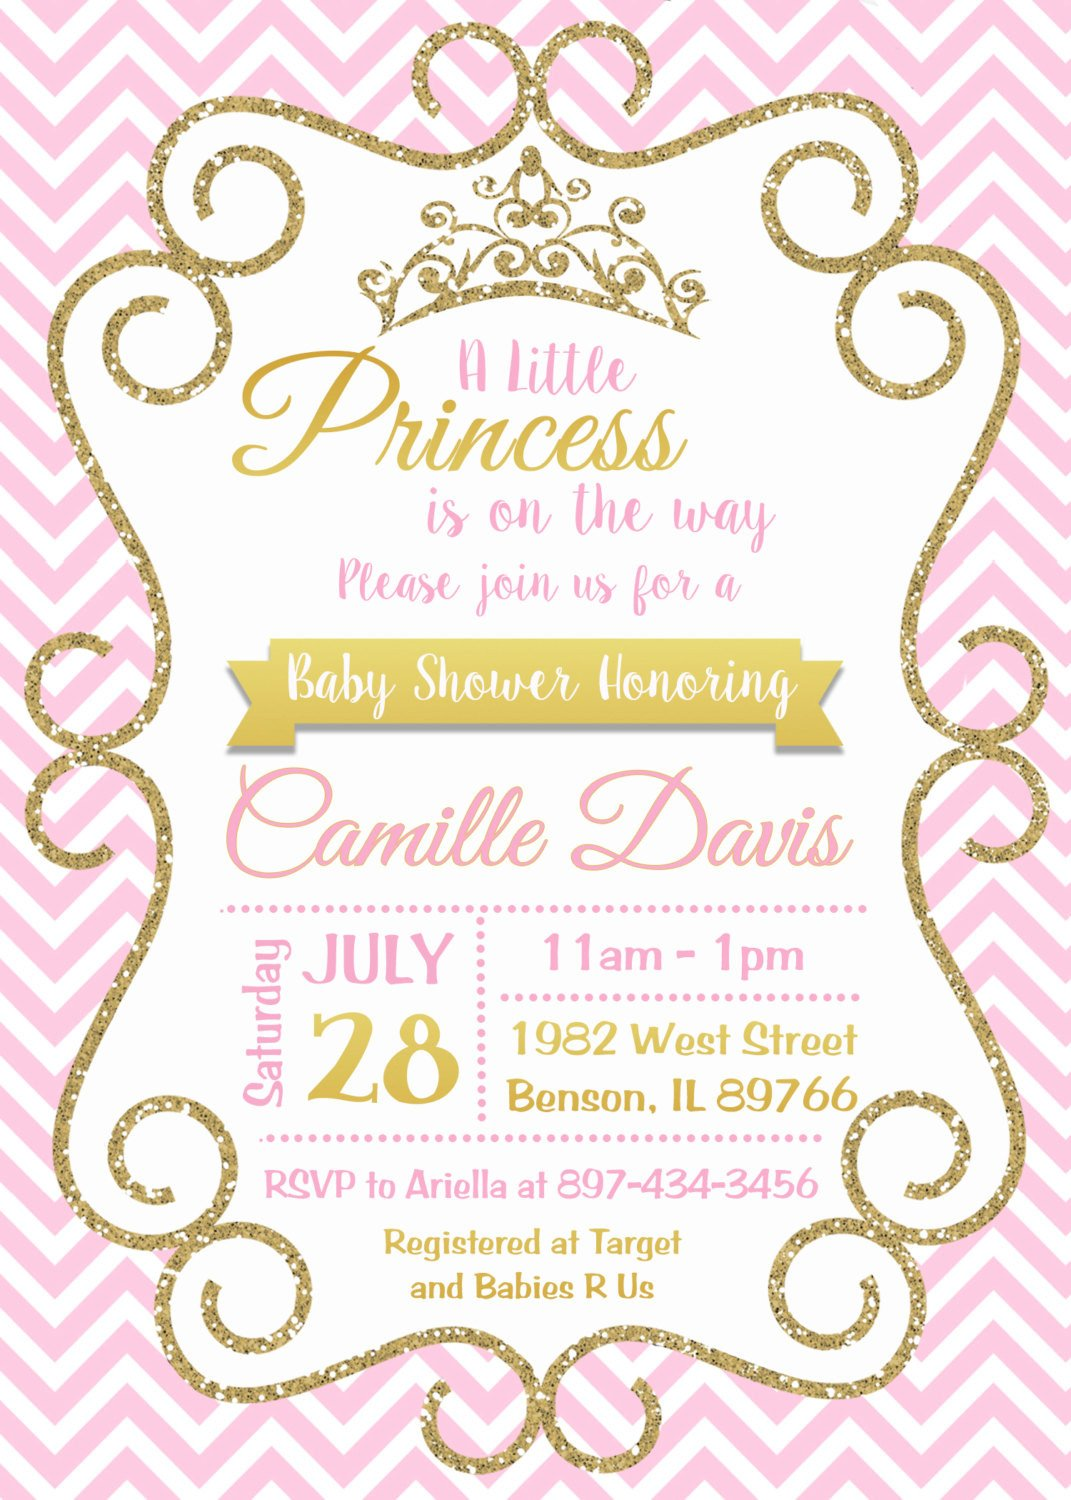 Princess Baby Shower Invitations Templates Pink and Gold Princess Baby Shower Invitation Sparkle